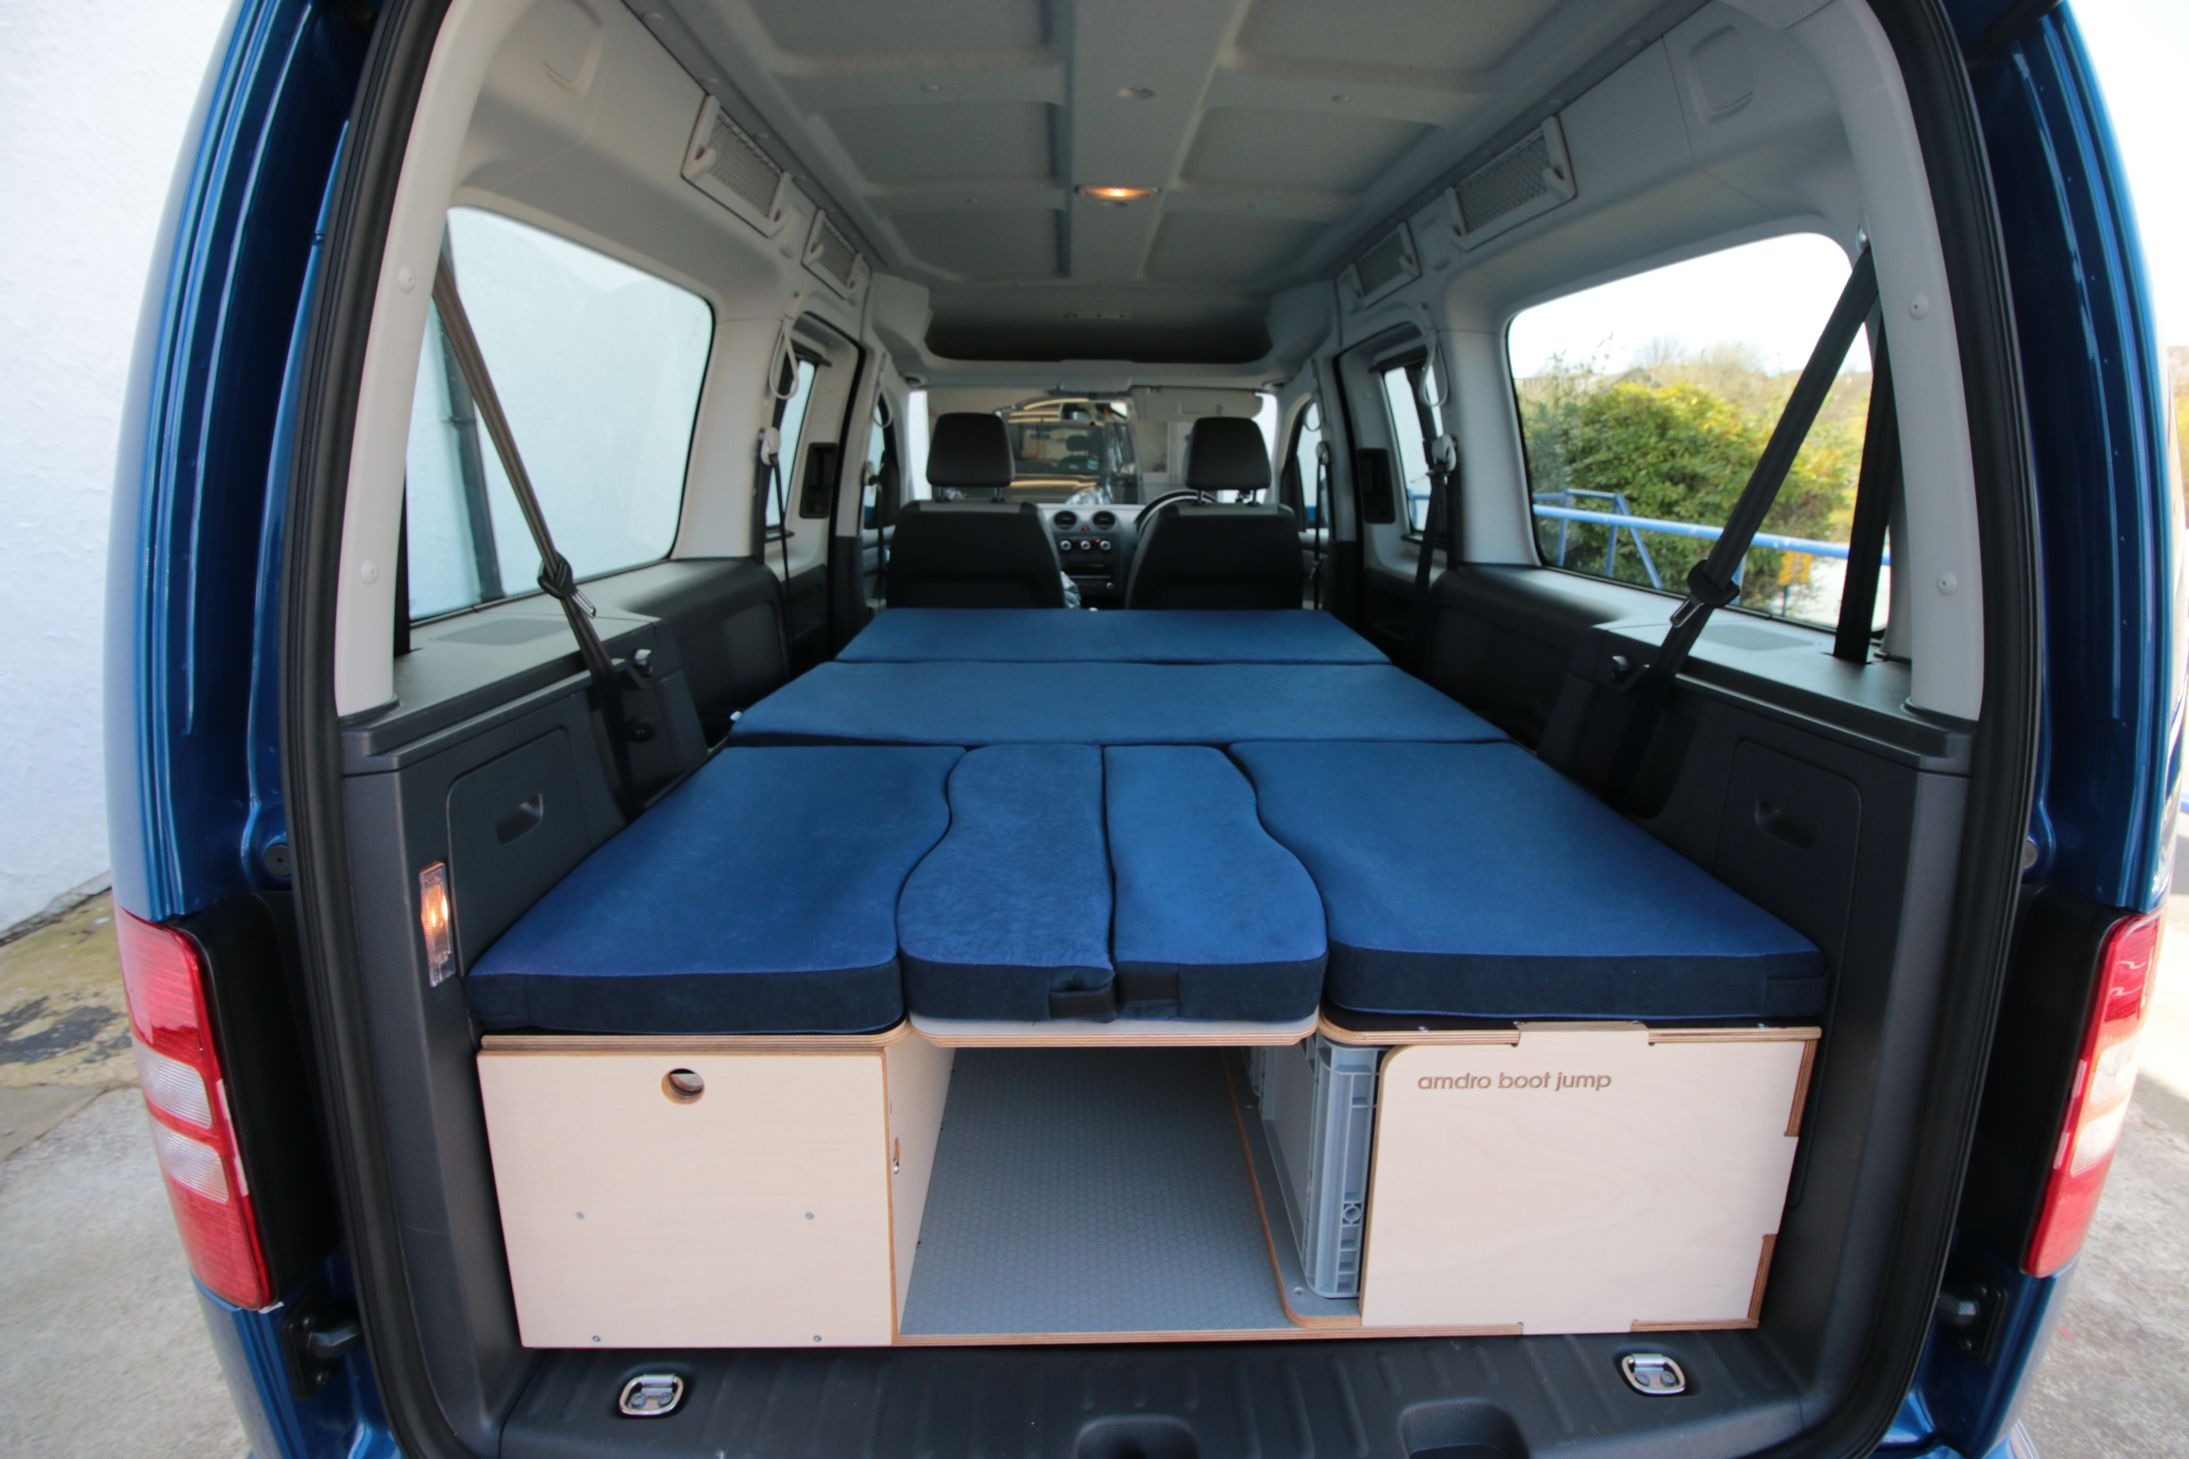 caddy maxi life bett camping vw caddy maxi vw caddy. Black Bedroom Furniture Sets. Home Design Ideas